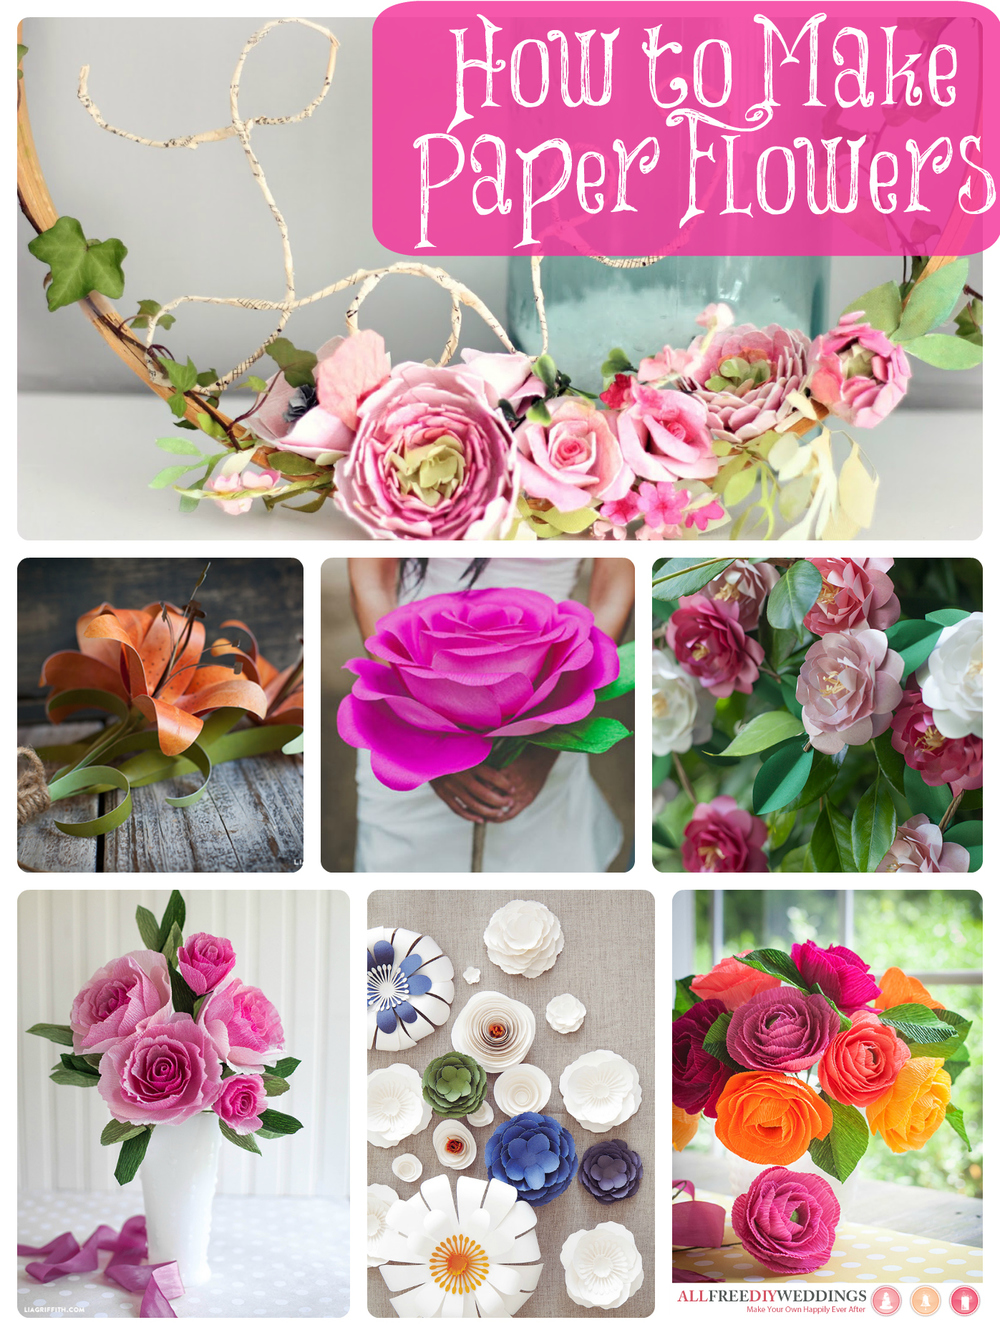 How To Make Paper Flowers 40 Diy Wedding Ideas Allfreediyweddings